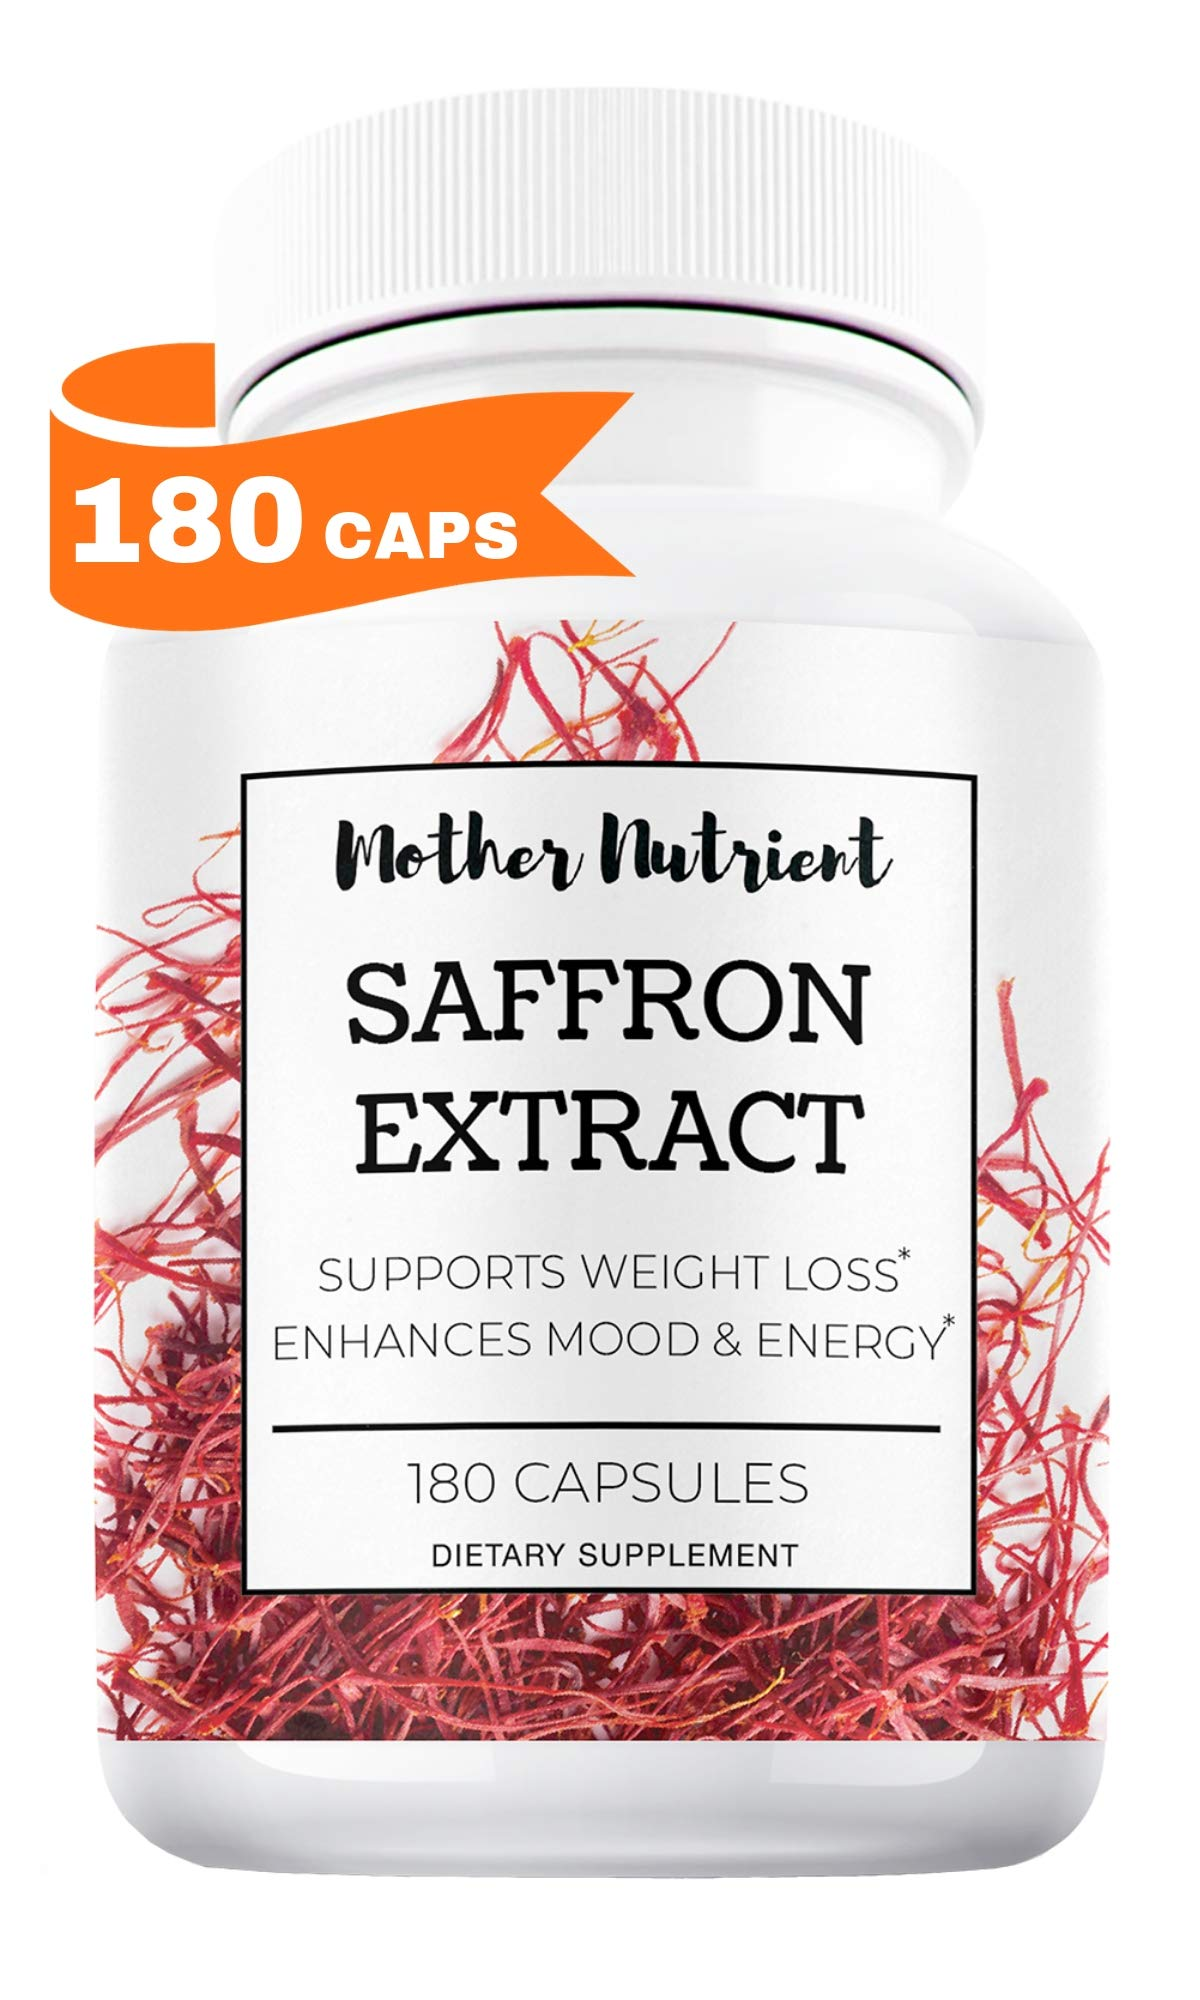 Saffron Supplement with 8825 mg of Saffron Extract, Crocus Sativus. 180 Capsules. Natural Appetite Suppressant for Women, Weight Loss Support, Mood Boost, Eye Health, and May Prevent Macular Degenerat by Mother Nutrient